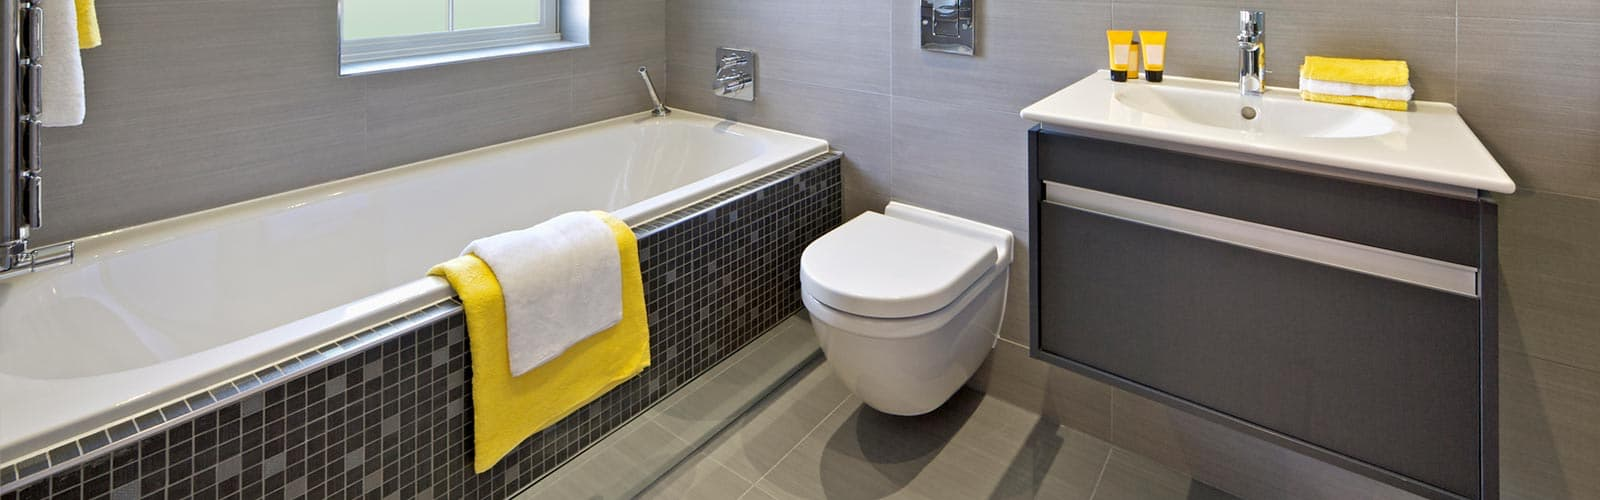 Harris Plumbing And Heating Services Sutton Coldfield